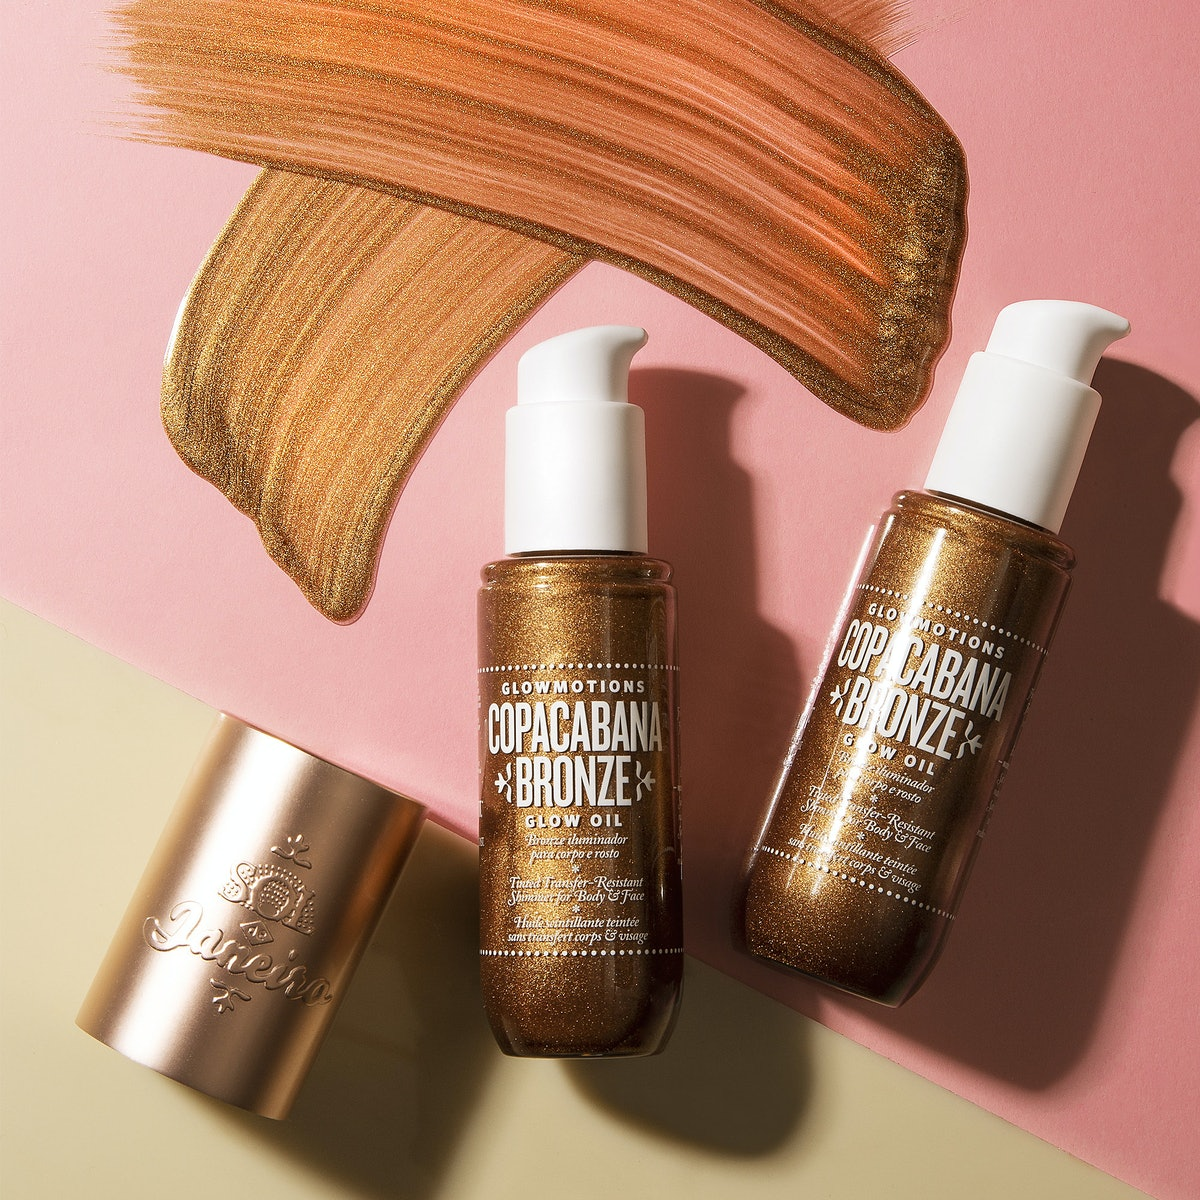 7 New 2019 Body Oils & Luminizers At Sephora For The Ultimate All-Over Glow